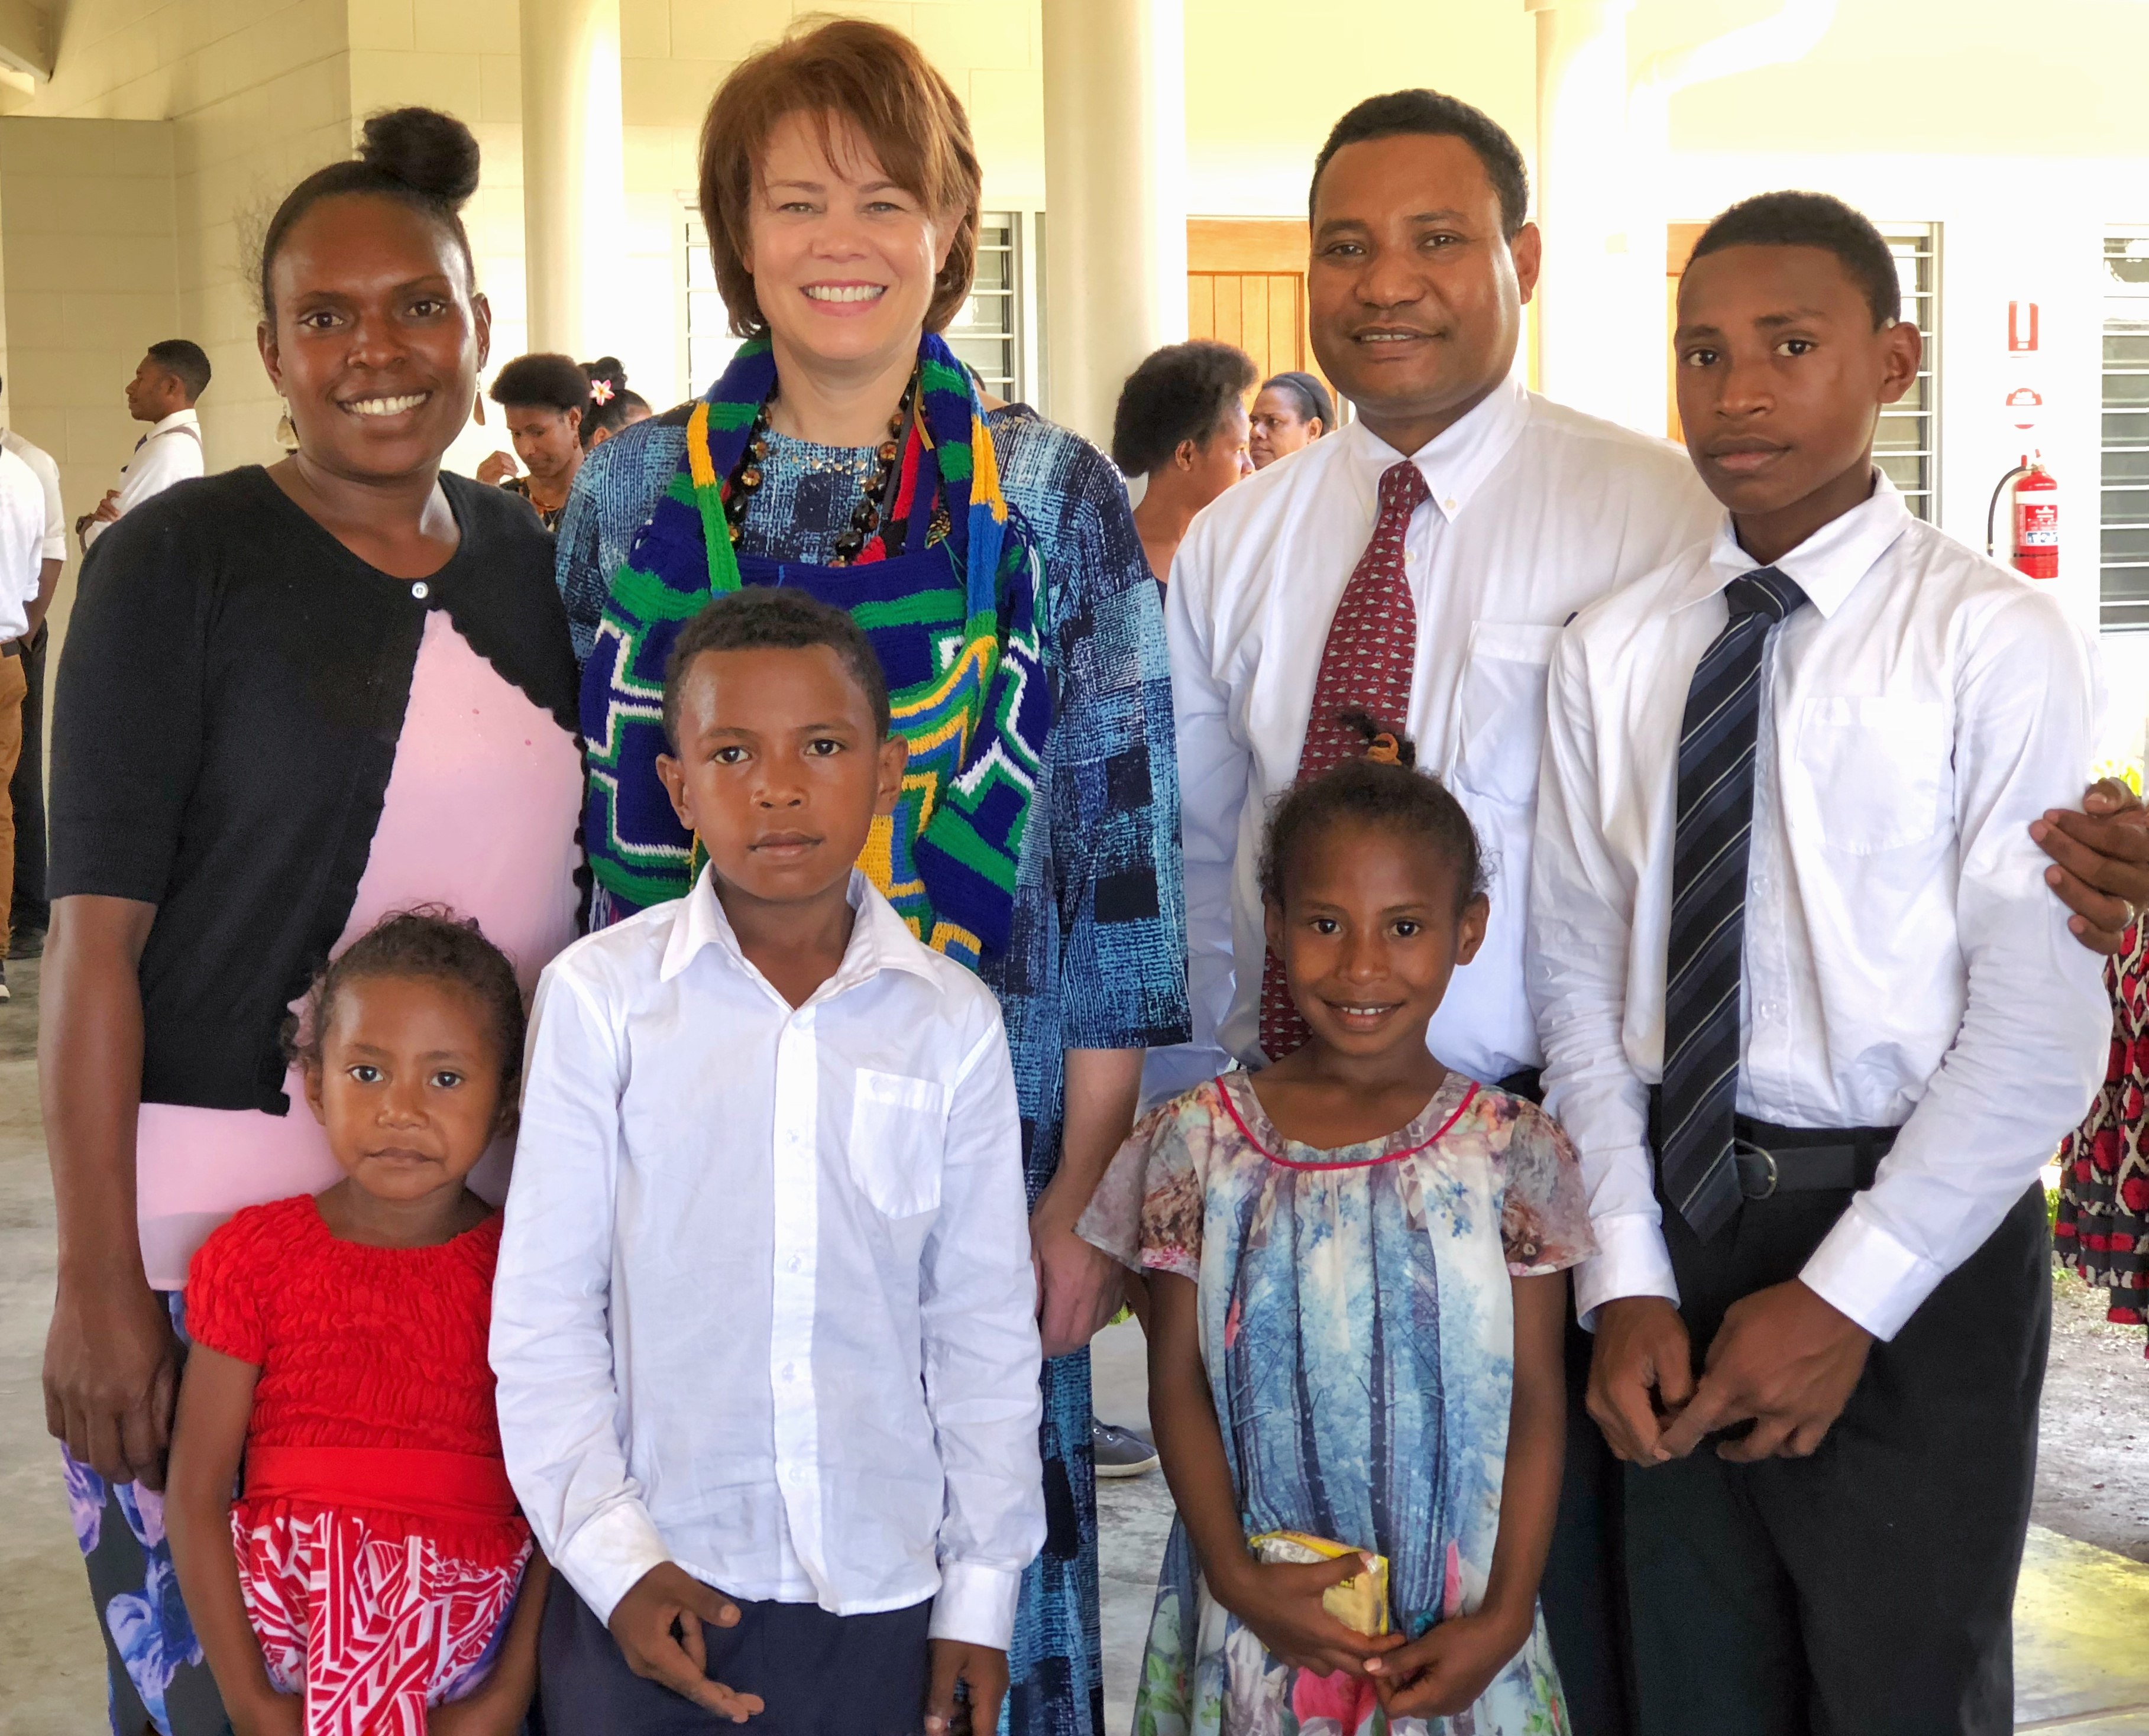 Sister Sharon Eubank poses for a photo with Church members in Papua New Guinea during a trip to the Pacific Area in October 2019.